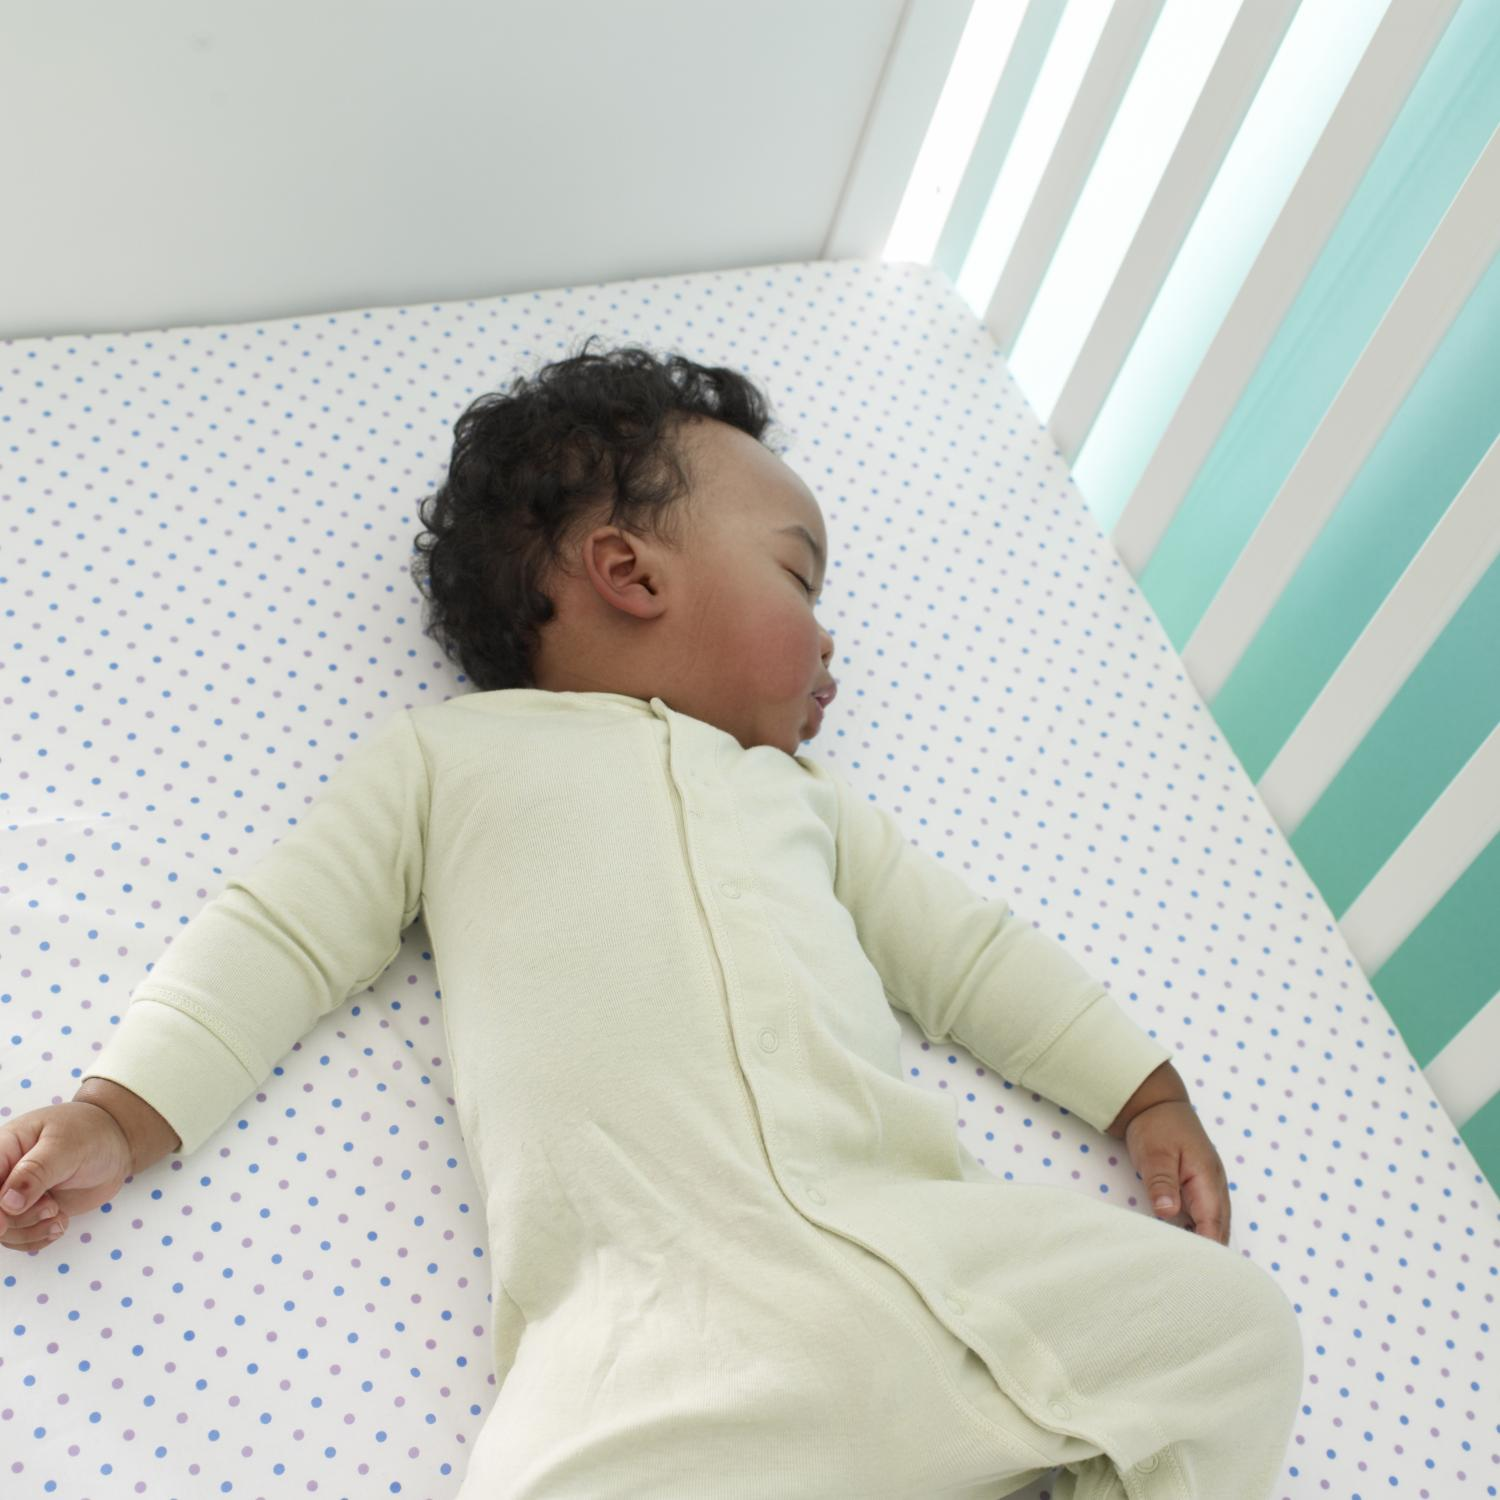 How to get your baby to sleep in crib | HireRush Blog